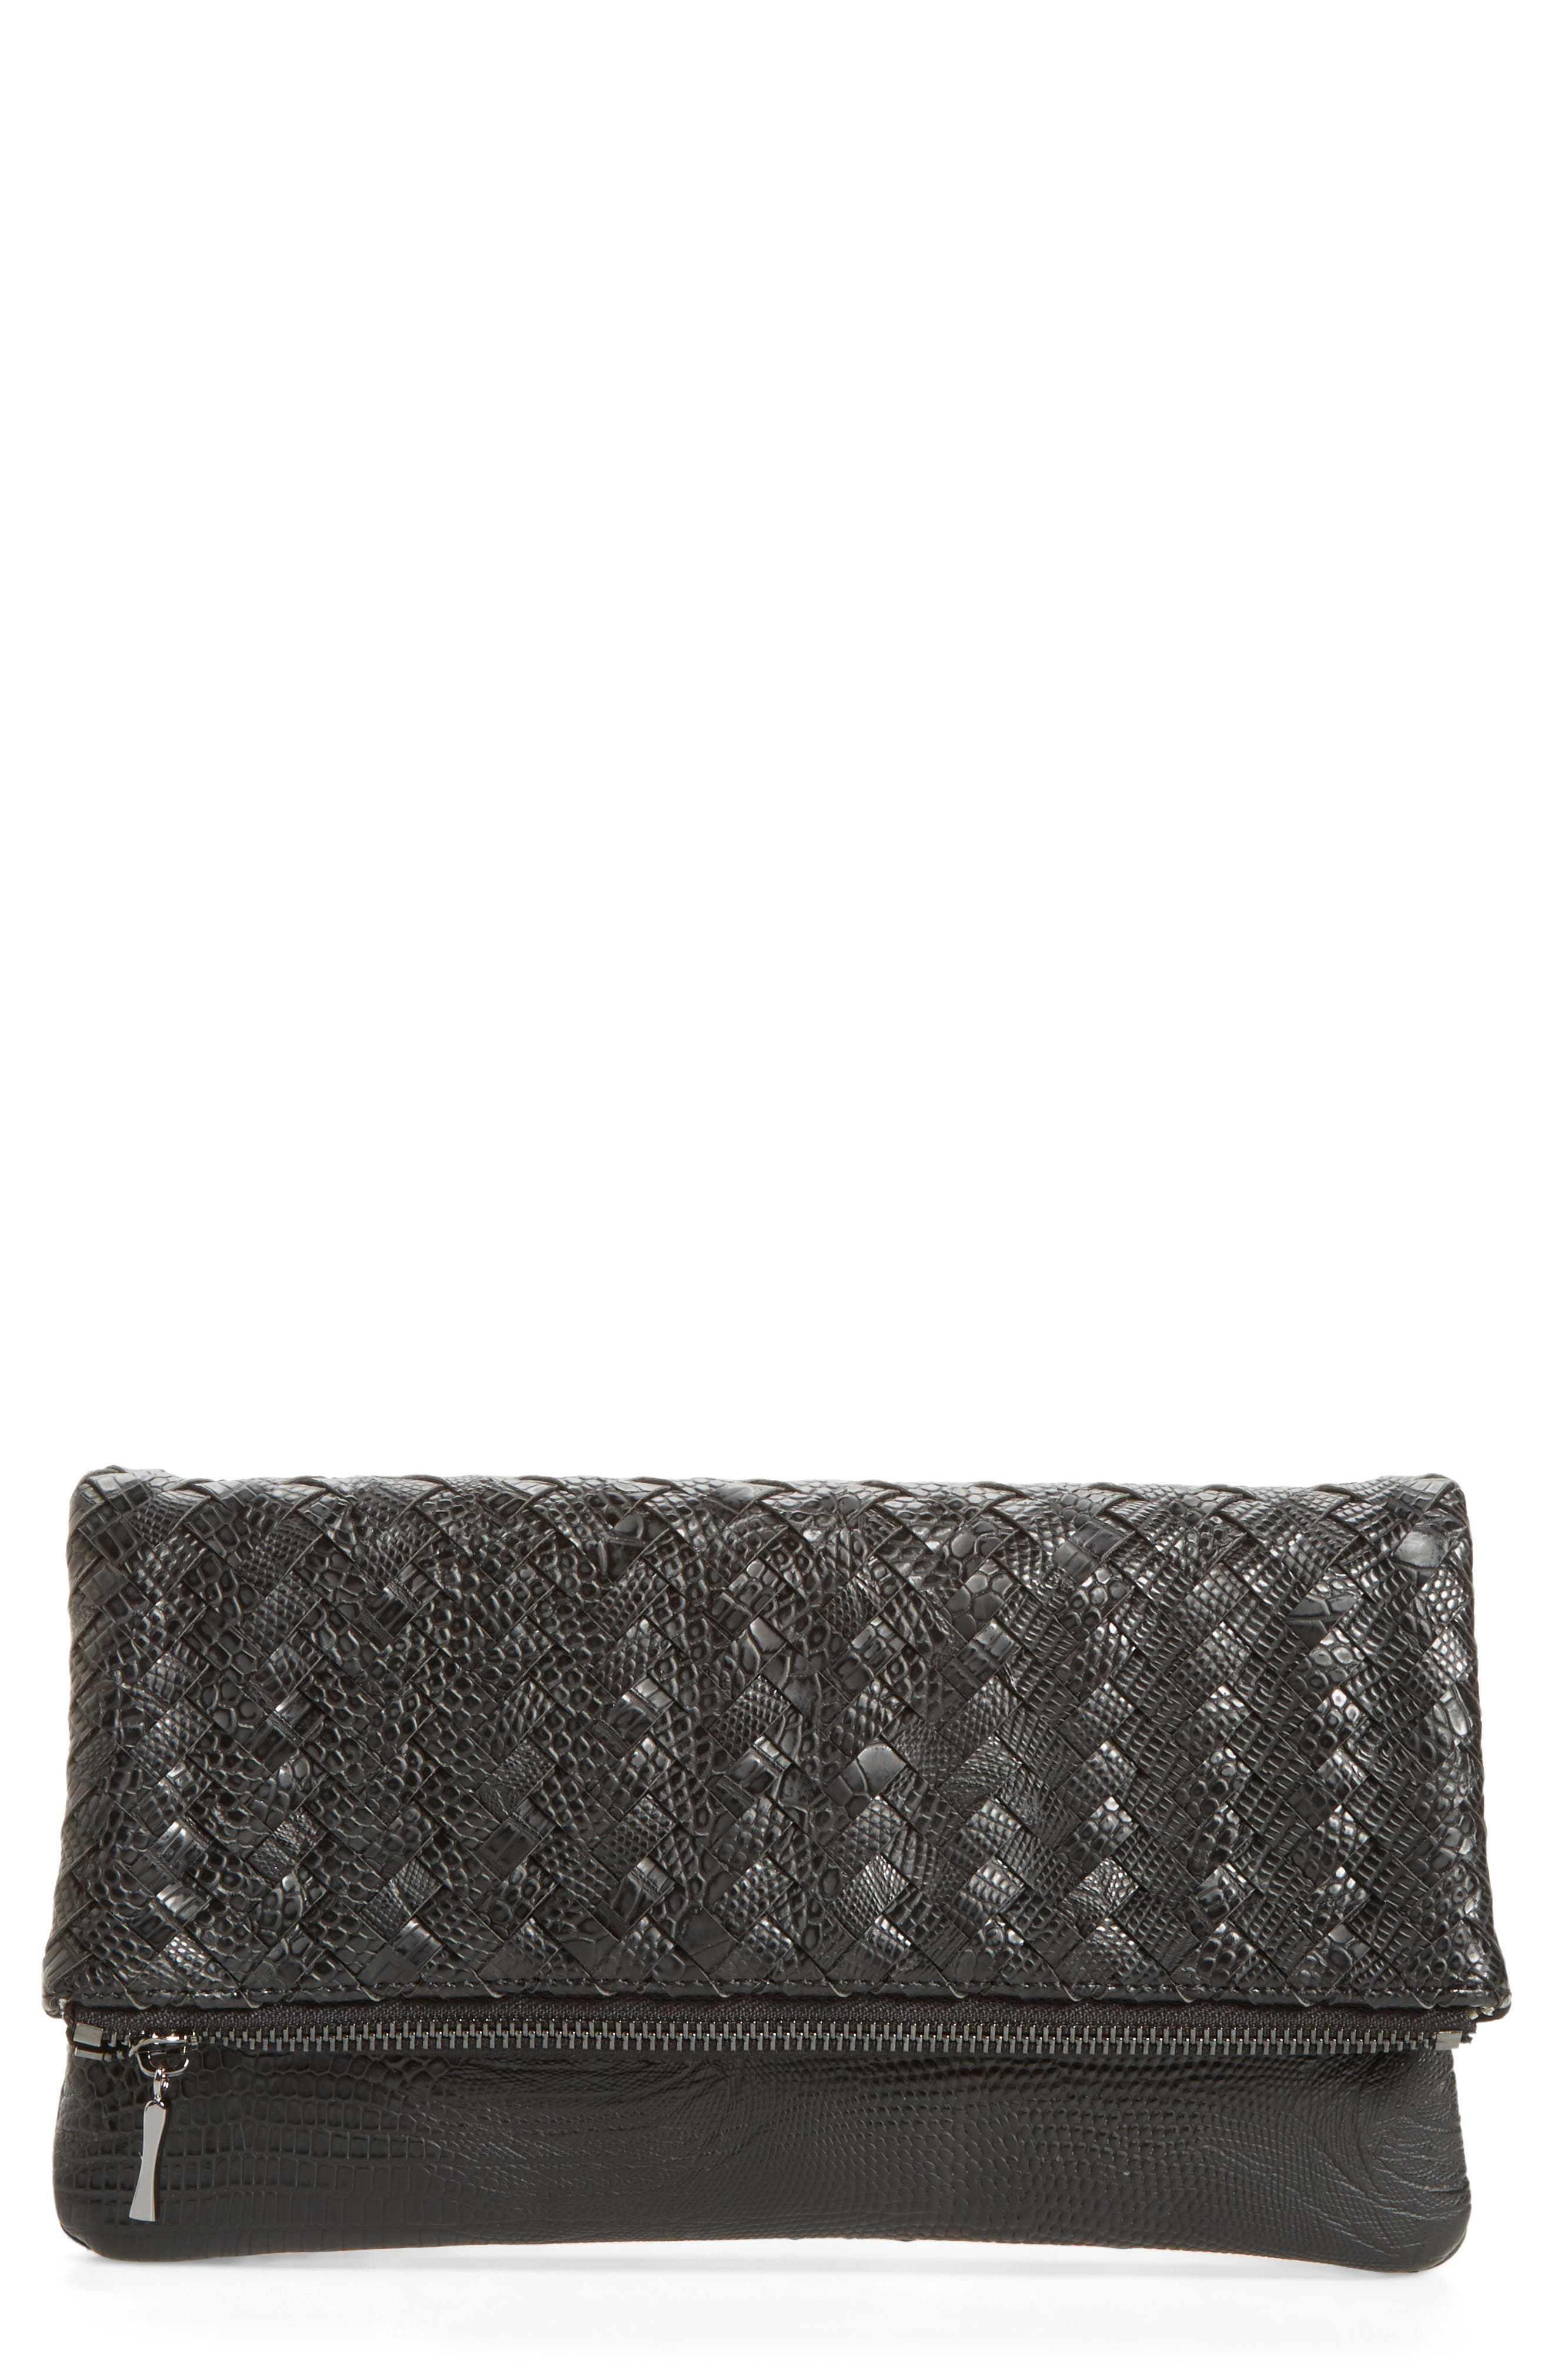 Alternate Image 1 Selected - Sole Society Kaya Crossweave Clutch